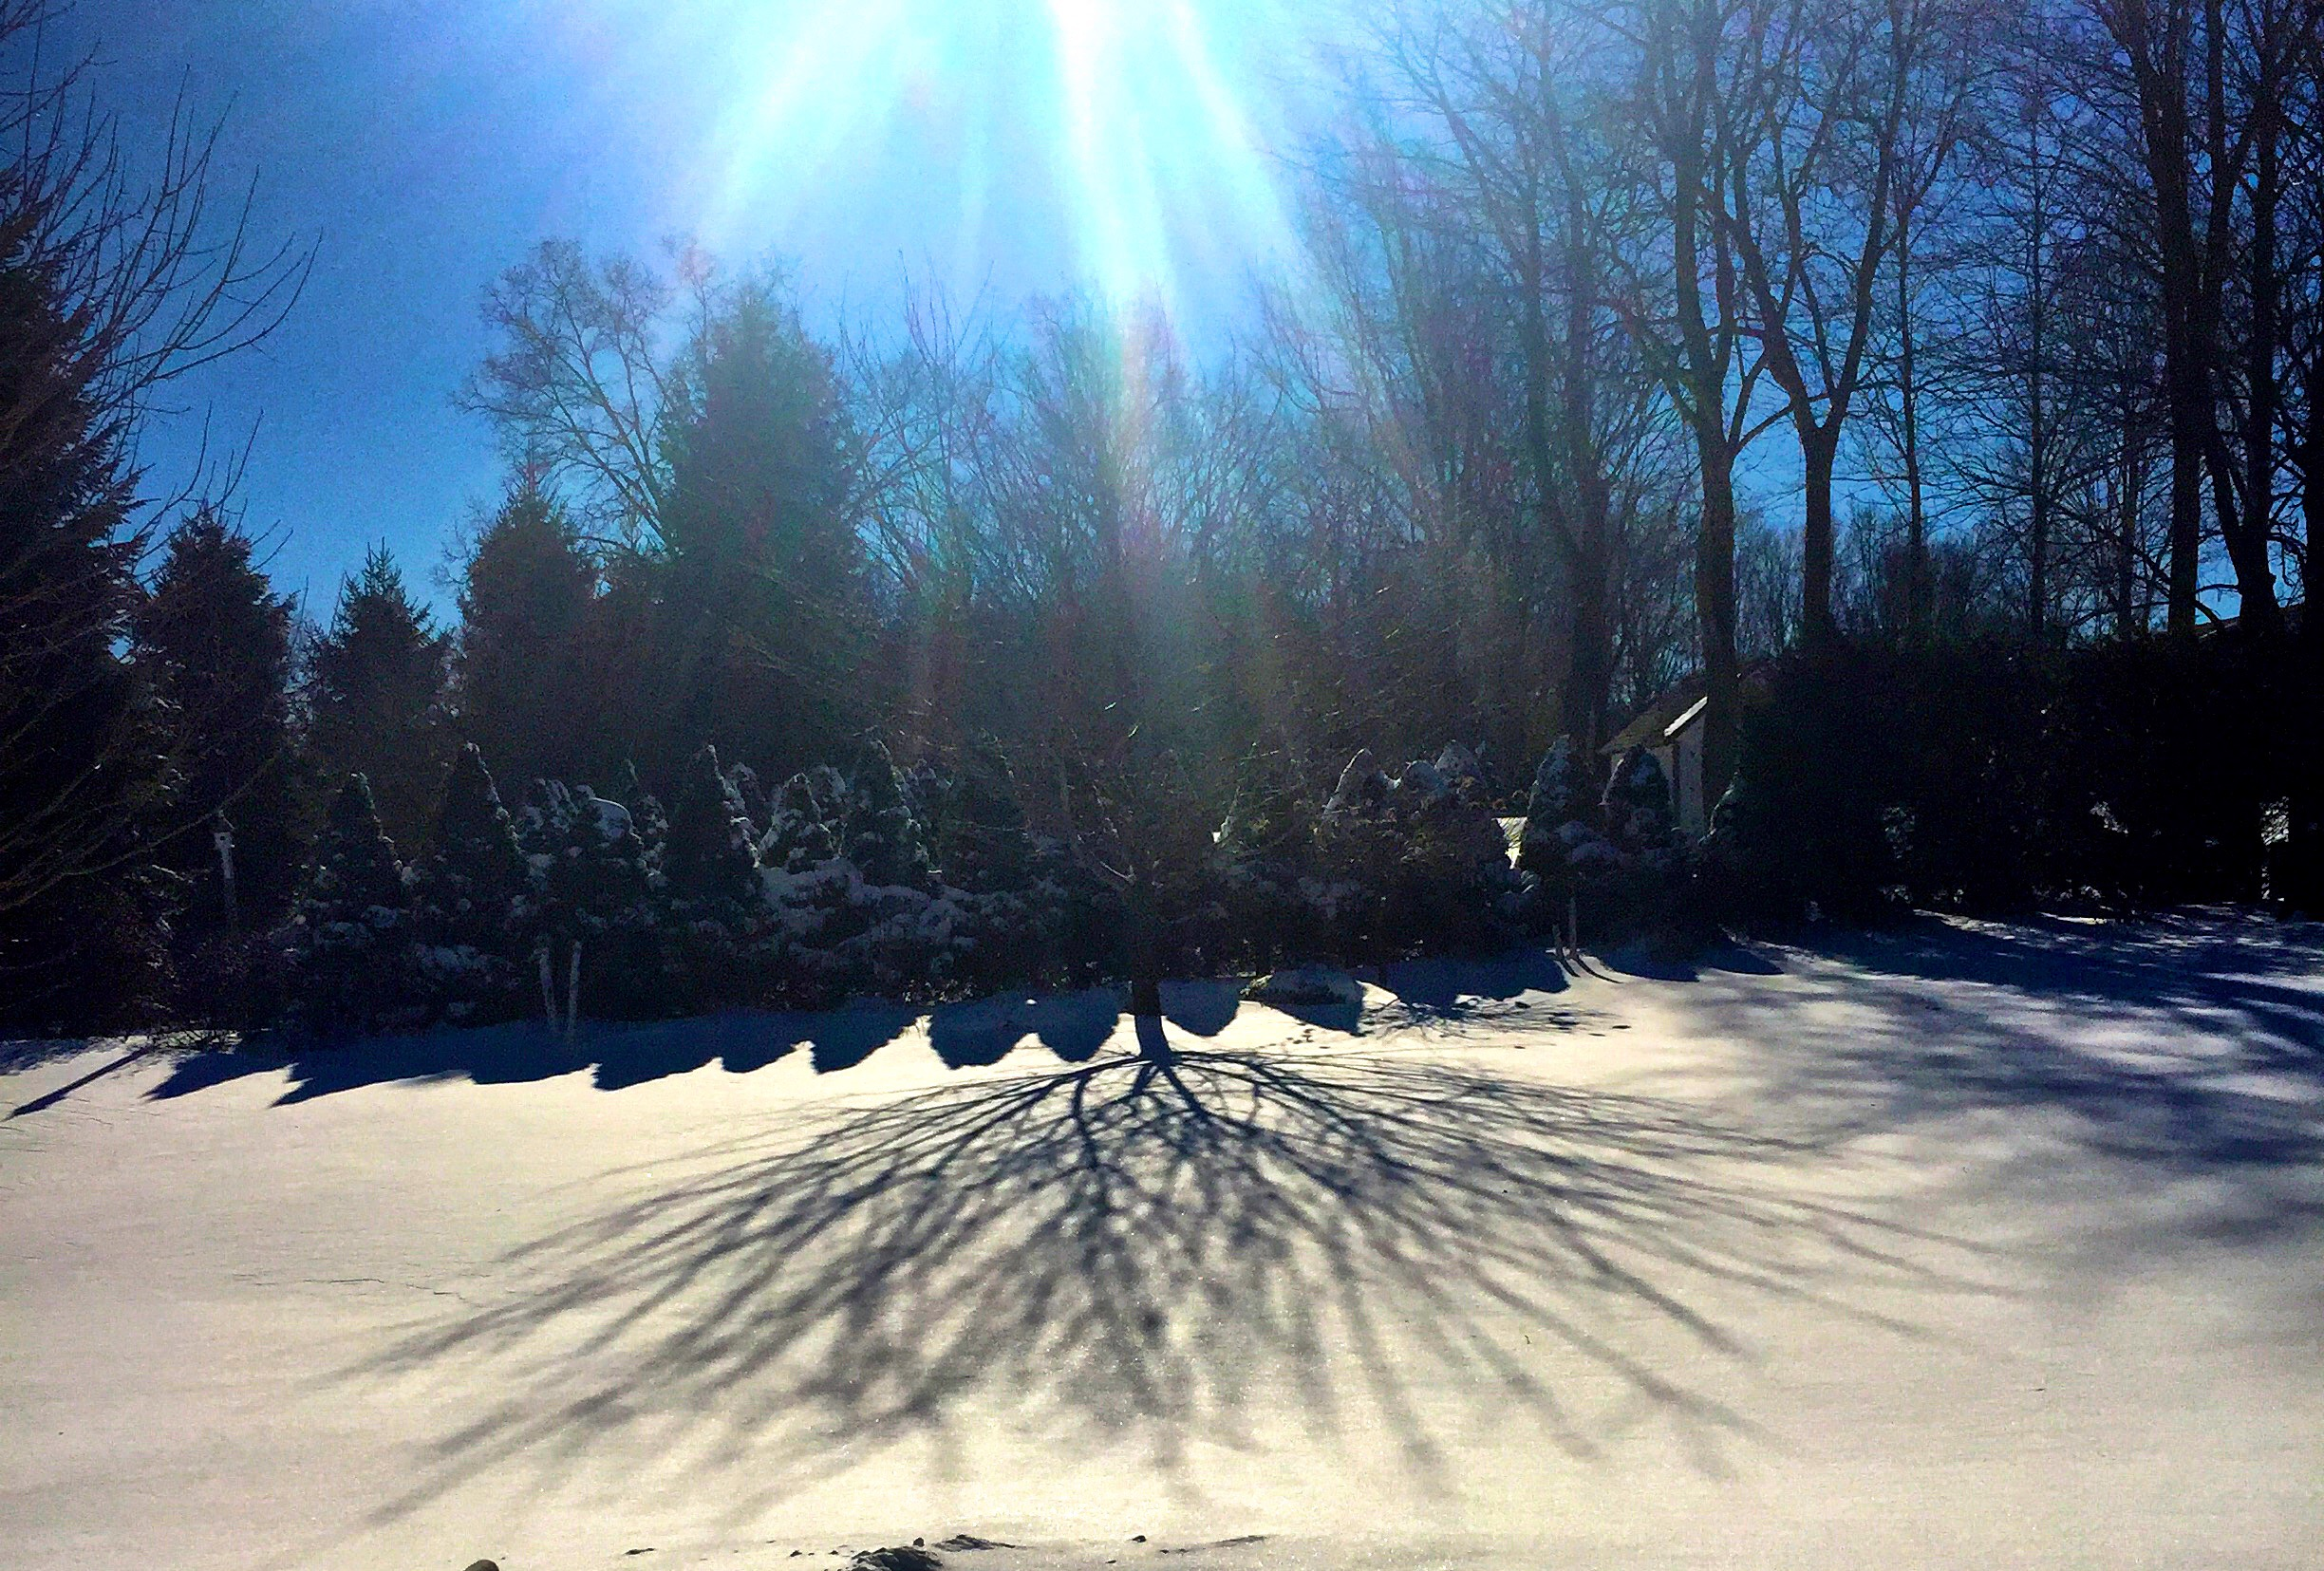 Winter finally arrived! I love the way the shadows move across the snowy backdrop in the garden.